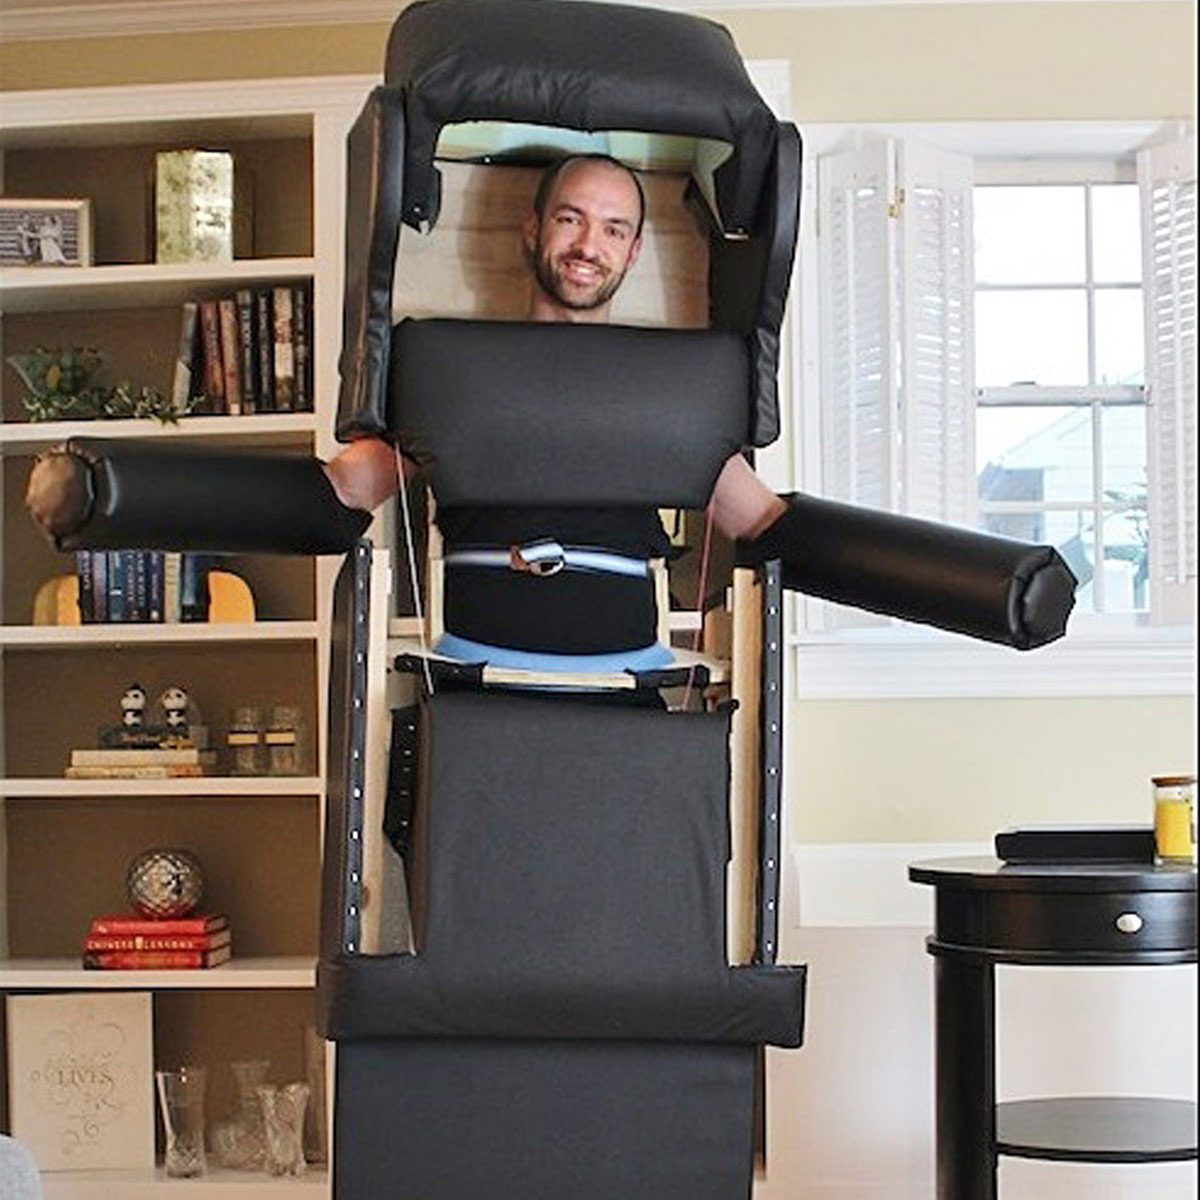 Chairformer Halloween Creation Idea